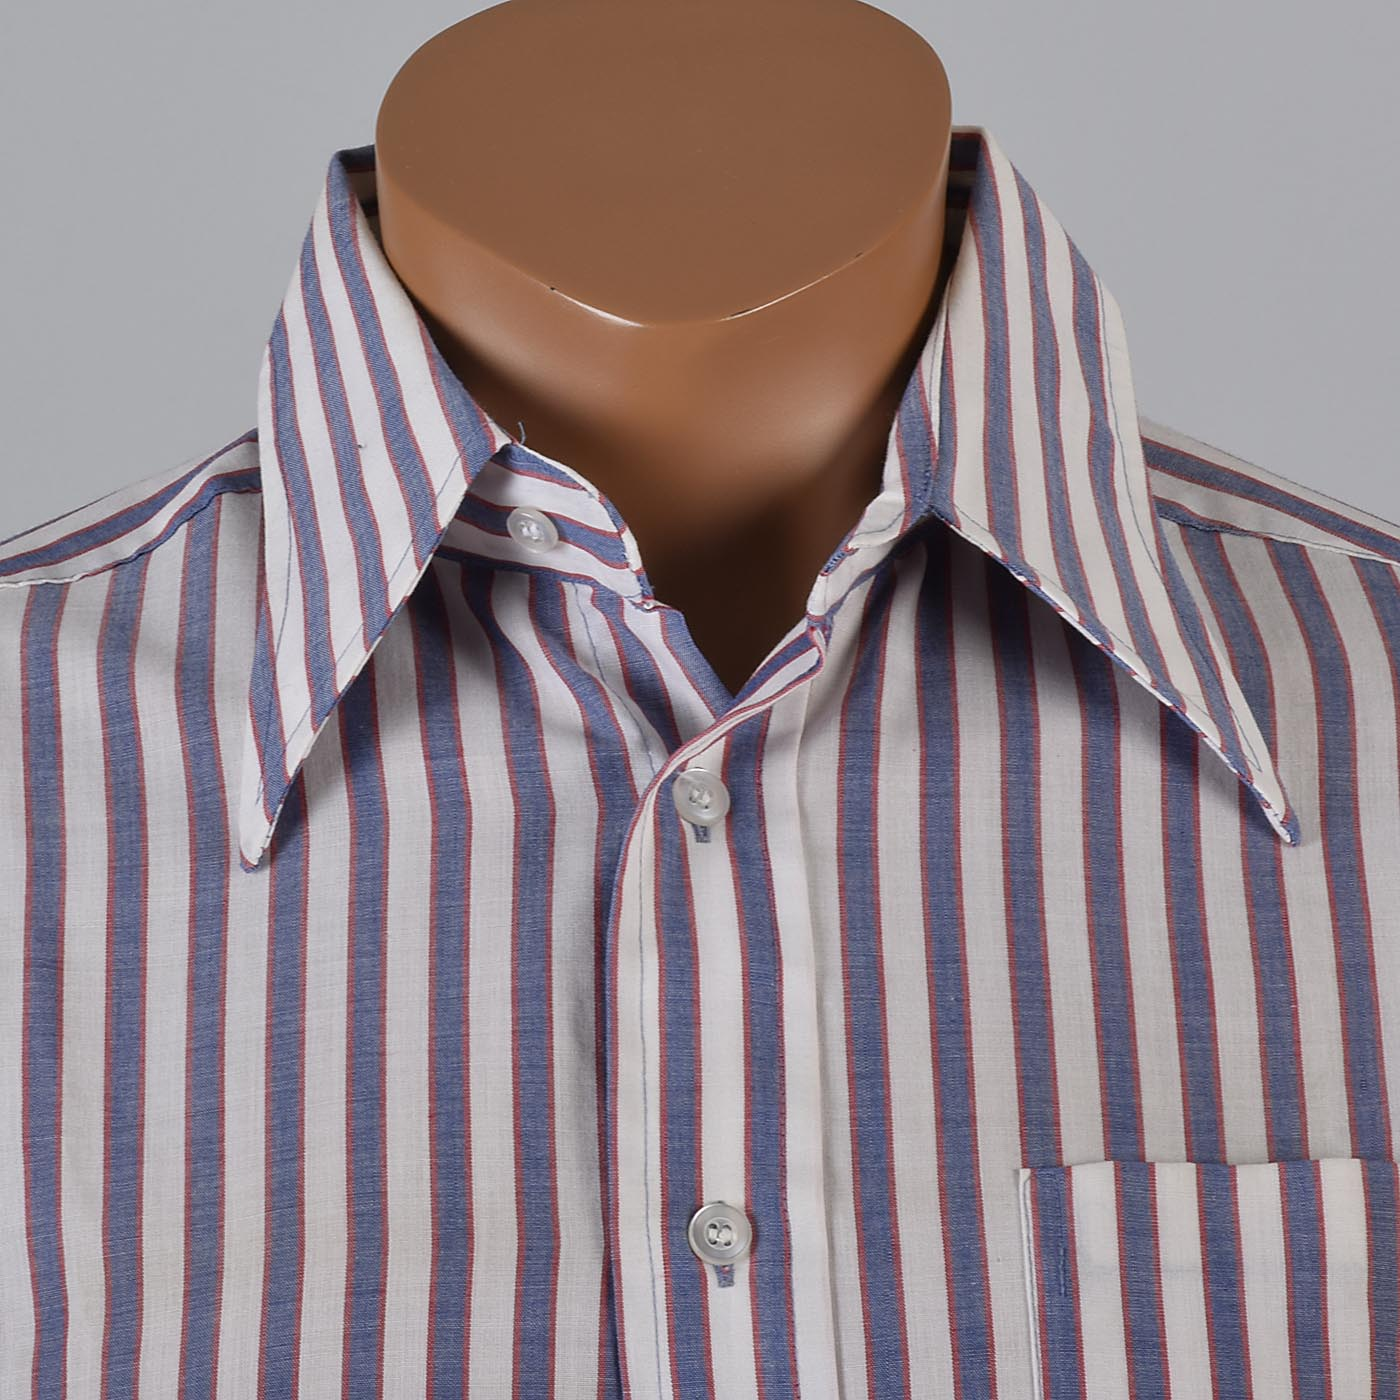 L vintage 1970s striped mod shirt long sleeve button down for Red and white striped button down shirt